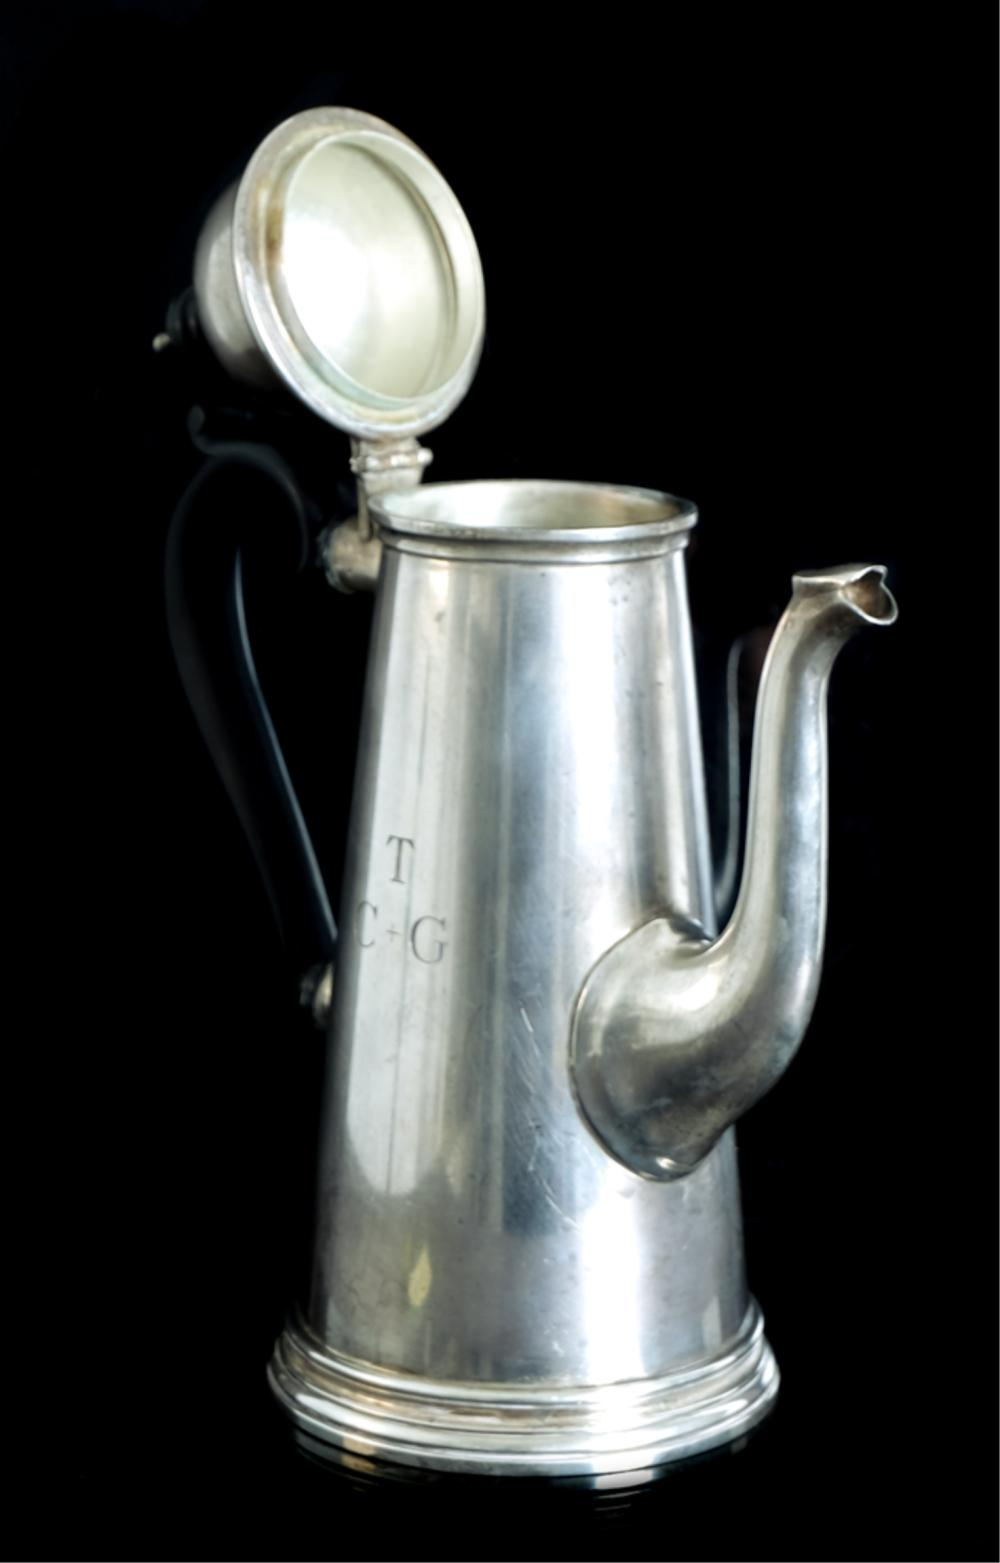 Tiffany & Co. Sterling Silver Coffee Pot 1950's